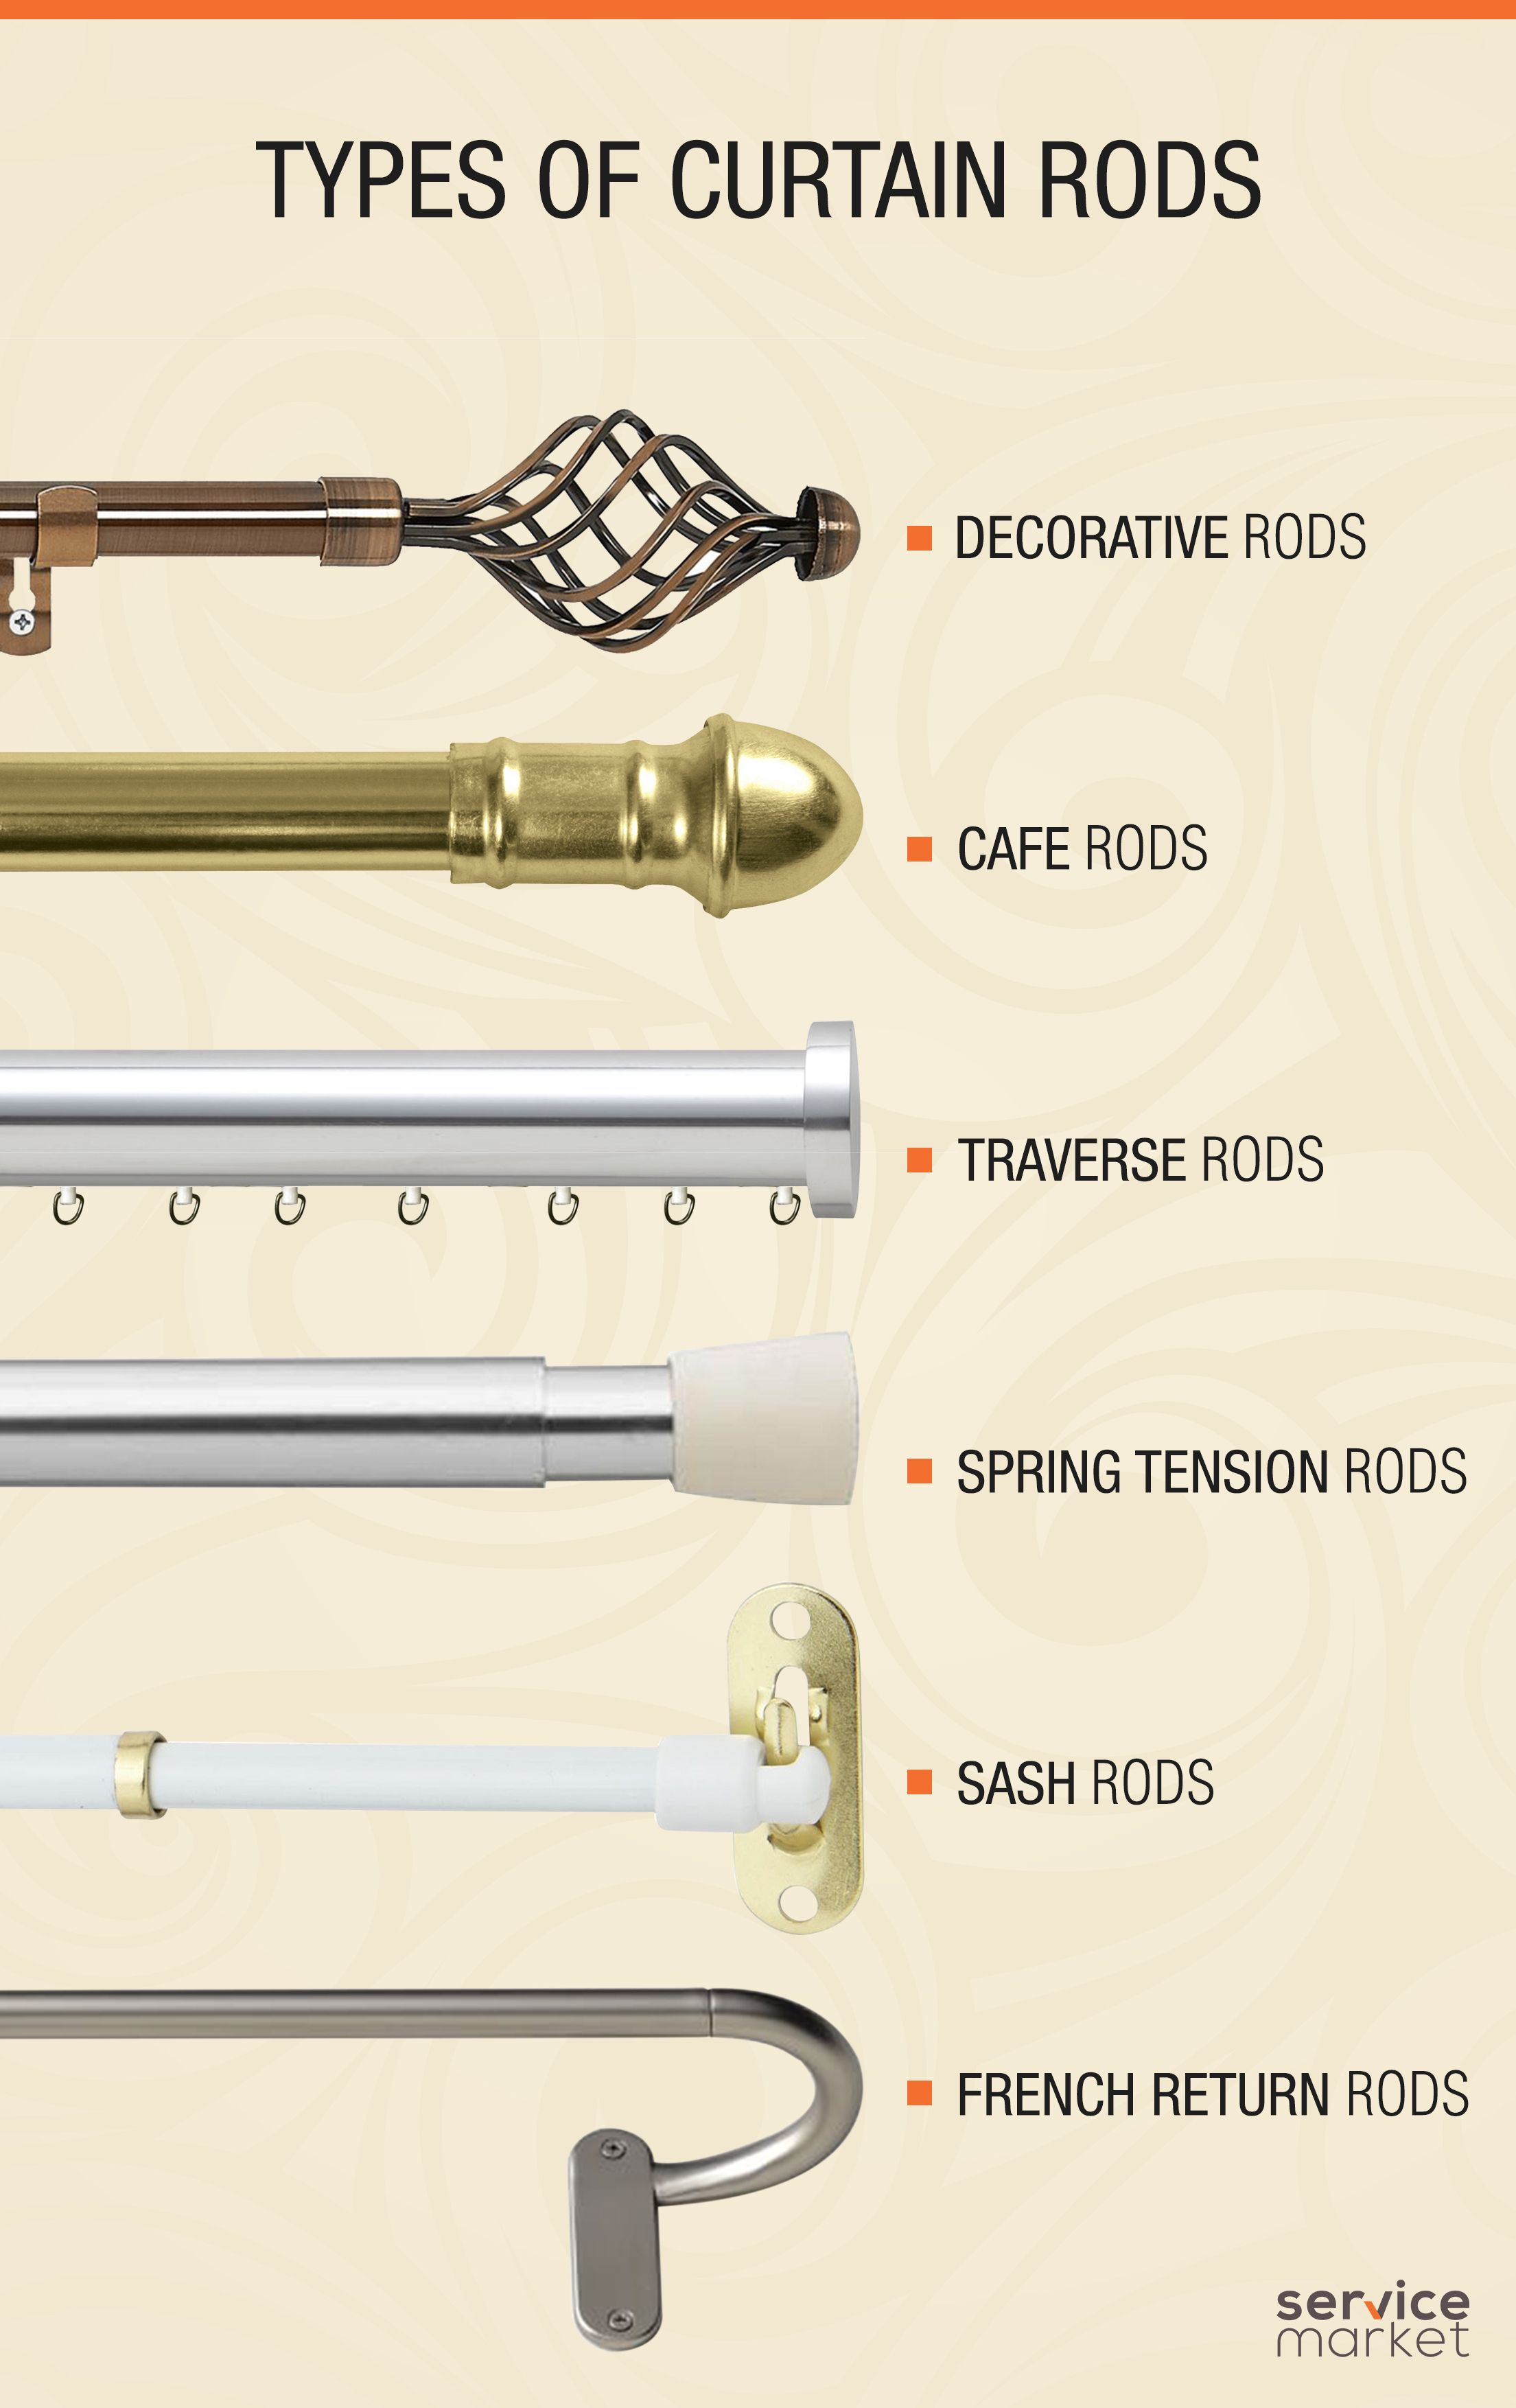 Types Of Curtain Rods In Dubai